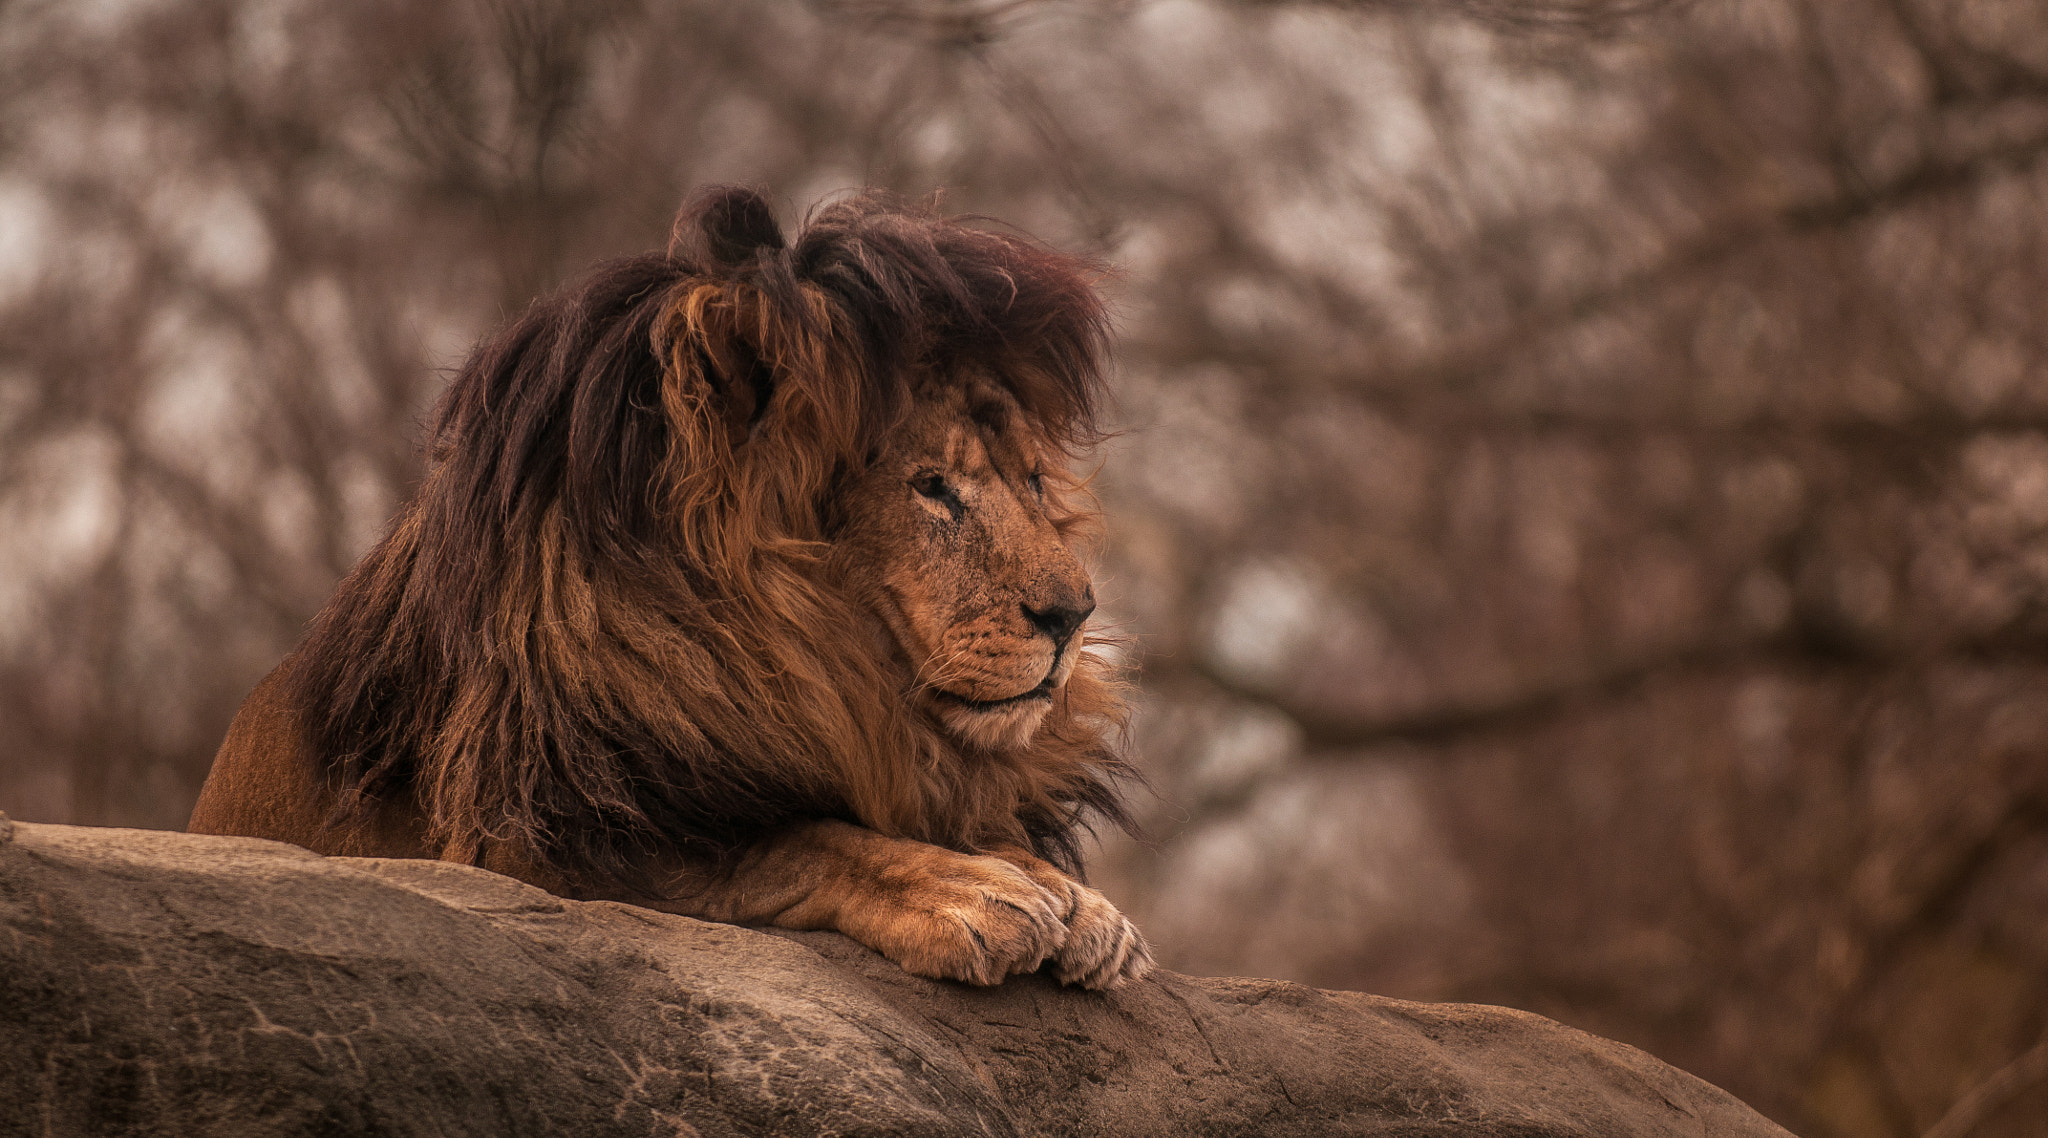 Photograph Lion King by Dylan Colon on 500px